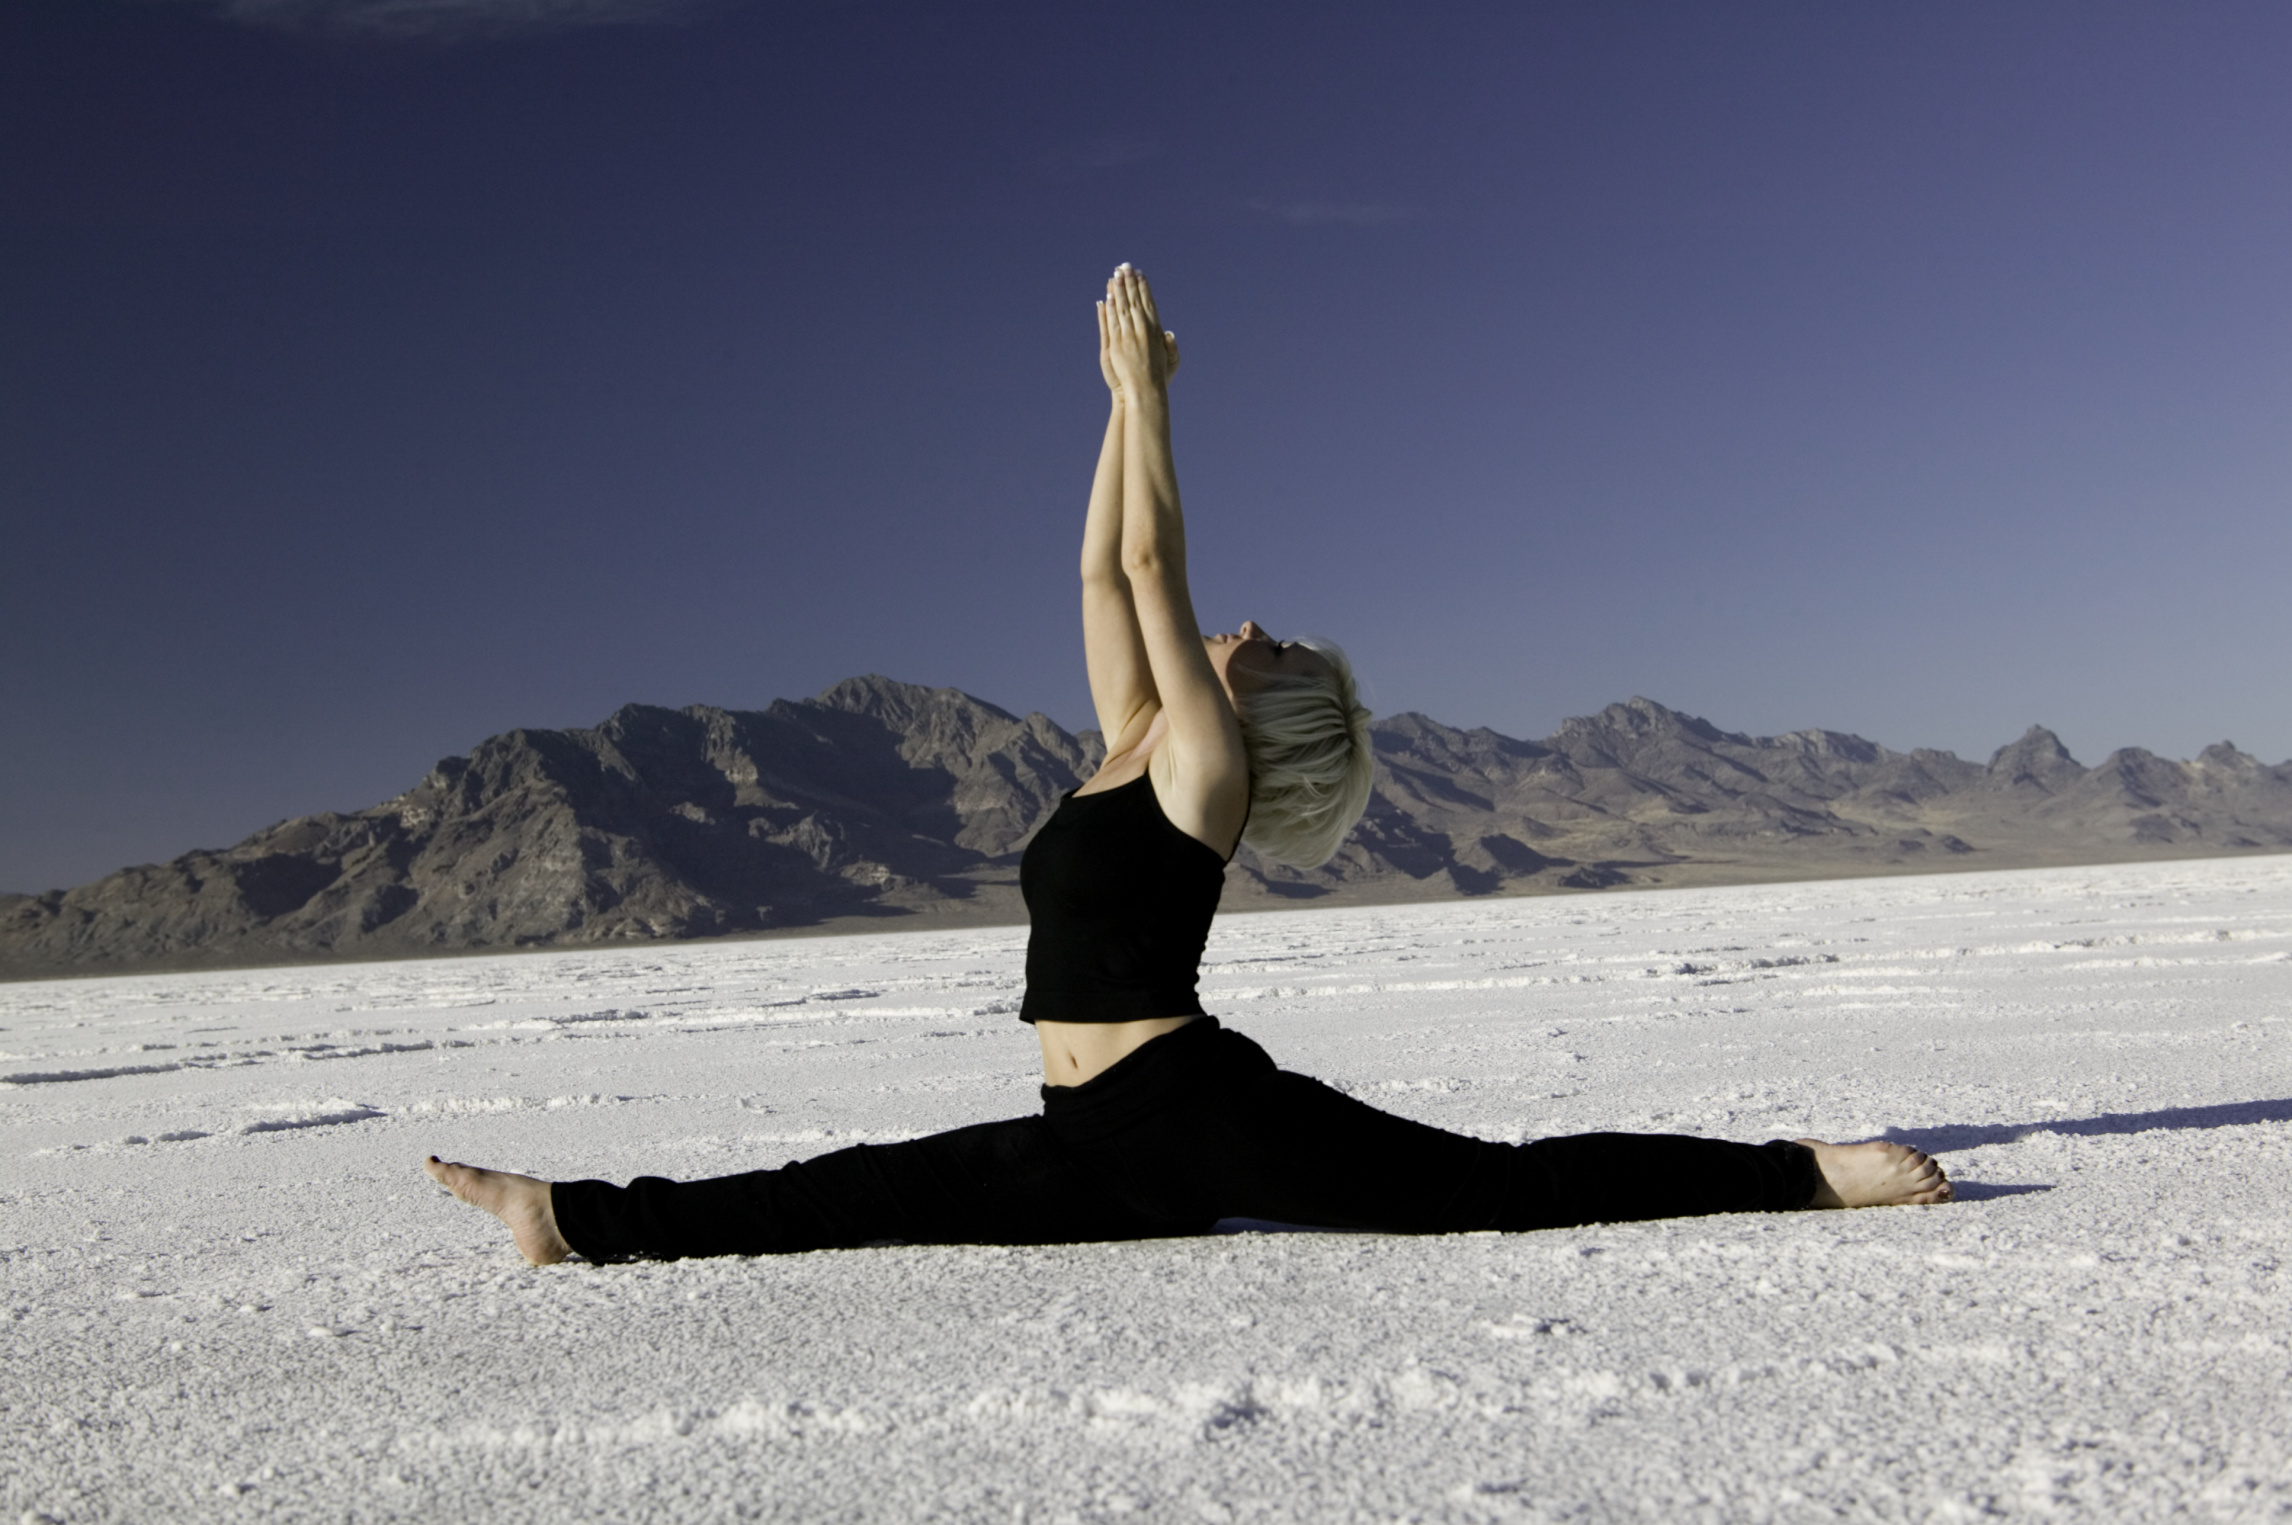 What Muscles Need to Be Stretched to Do the Splits? | Chron com